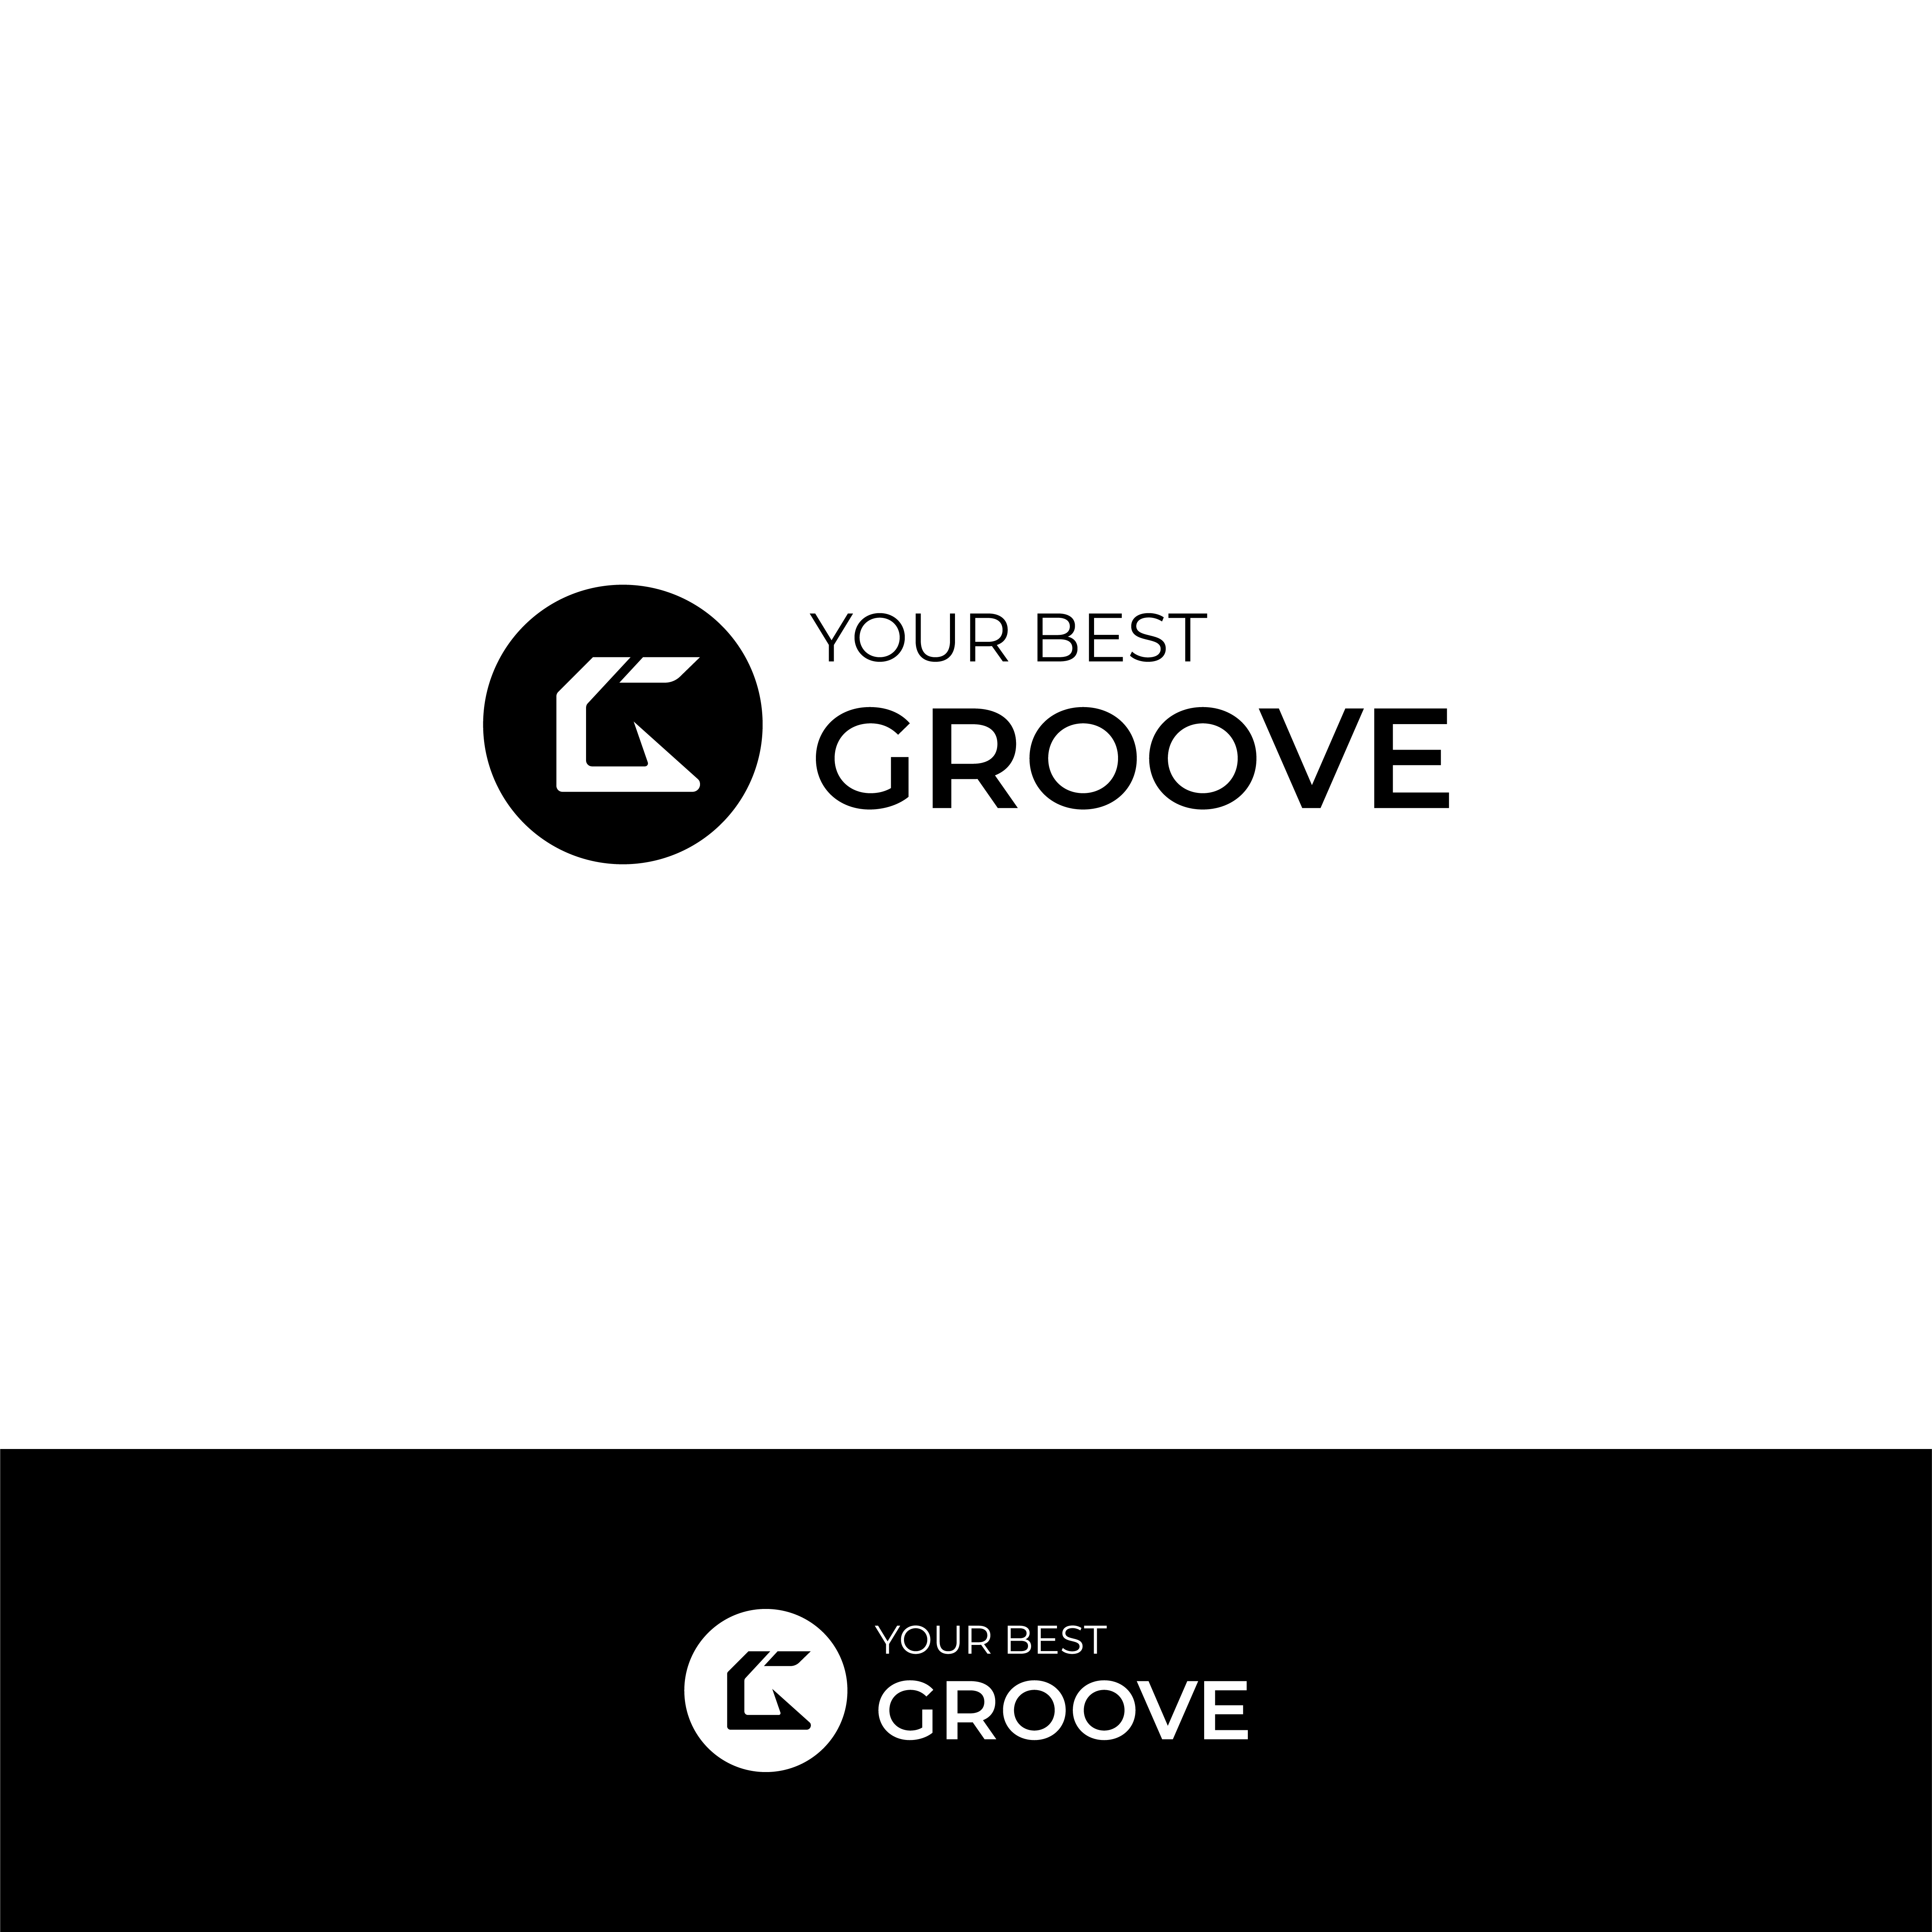 I will design a creative minimalist Logo for your Business